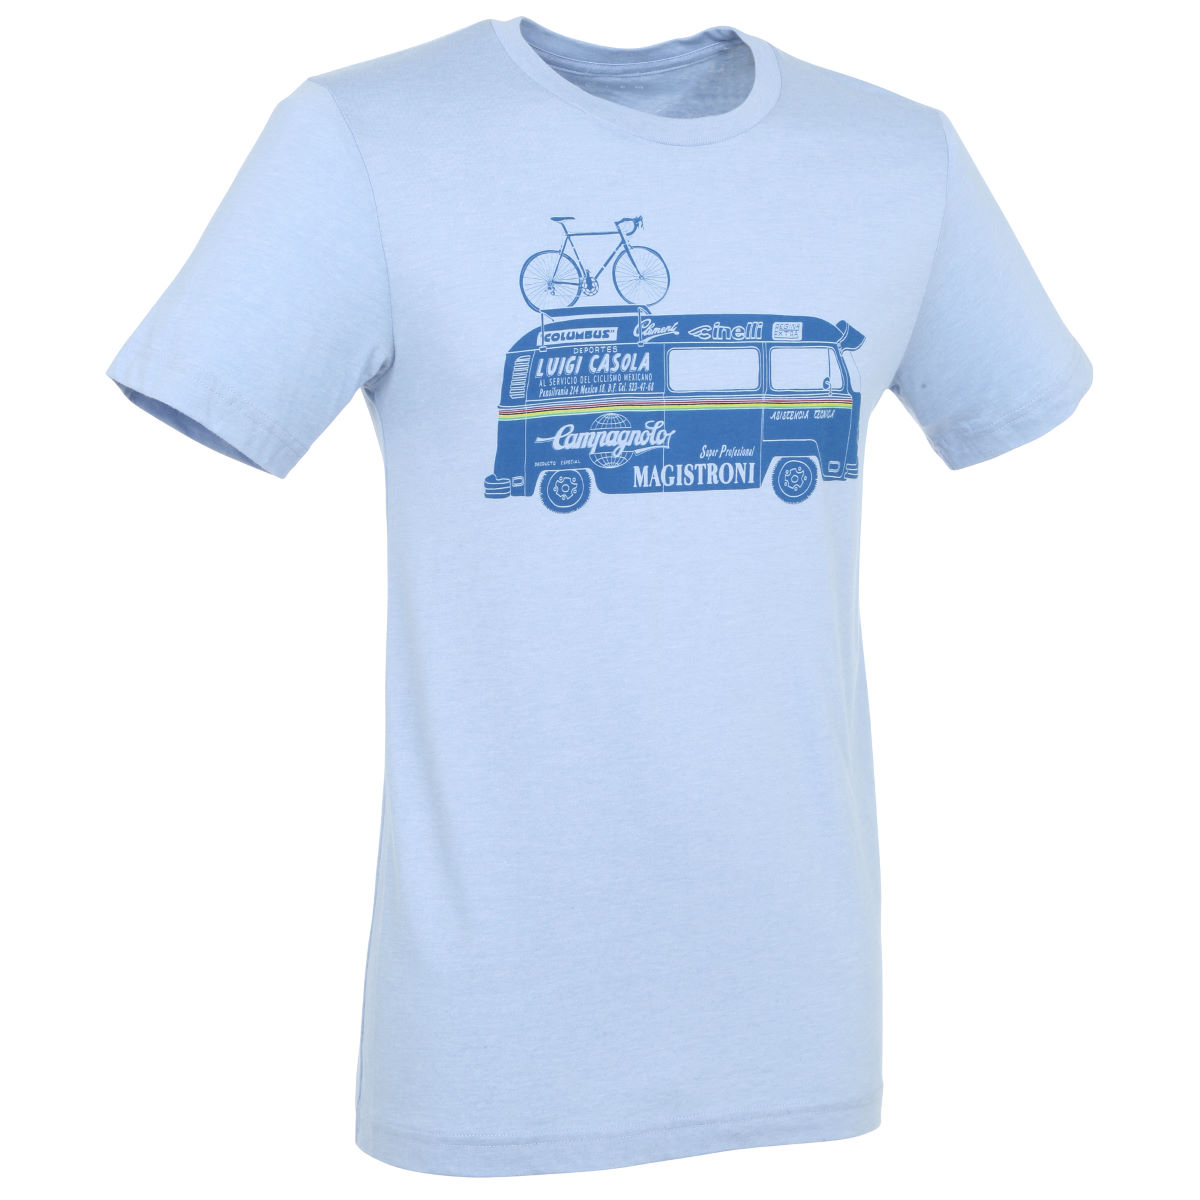 T-shirt Endurance Conspiracy Campy Van inspired by Campagnolo - S